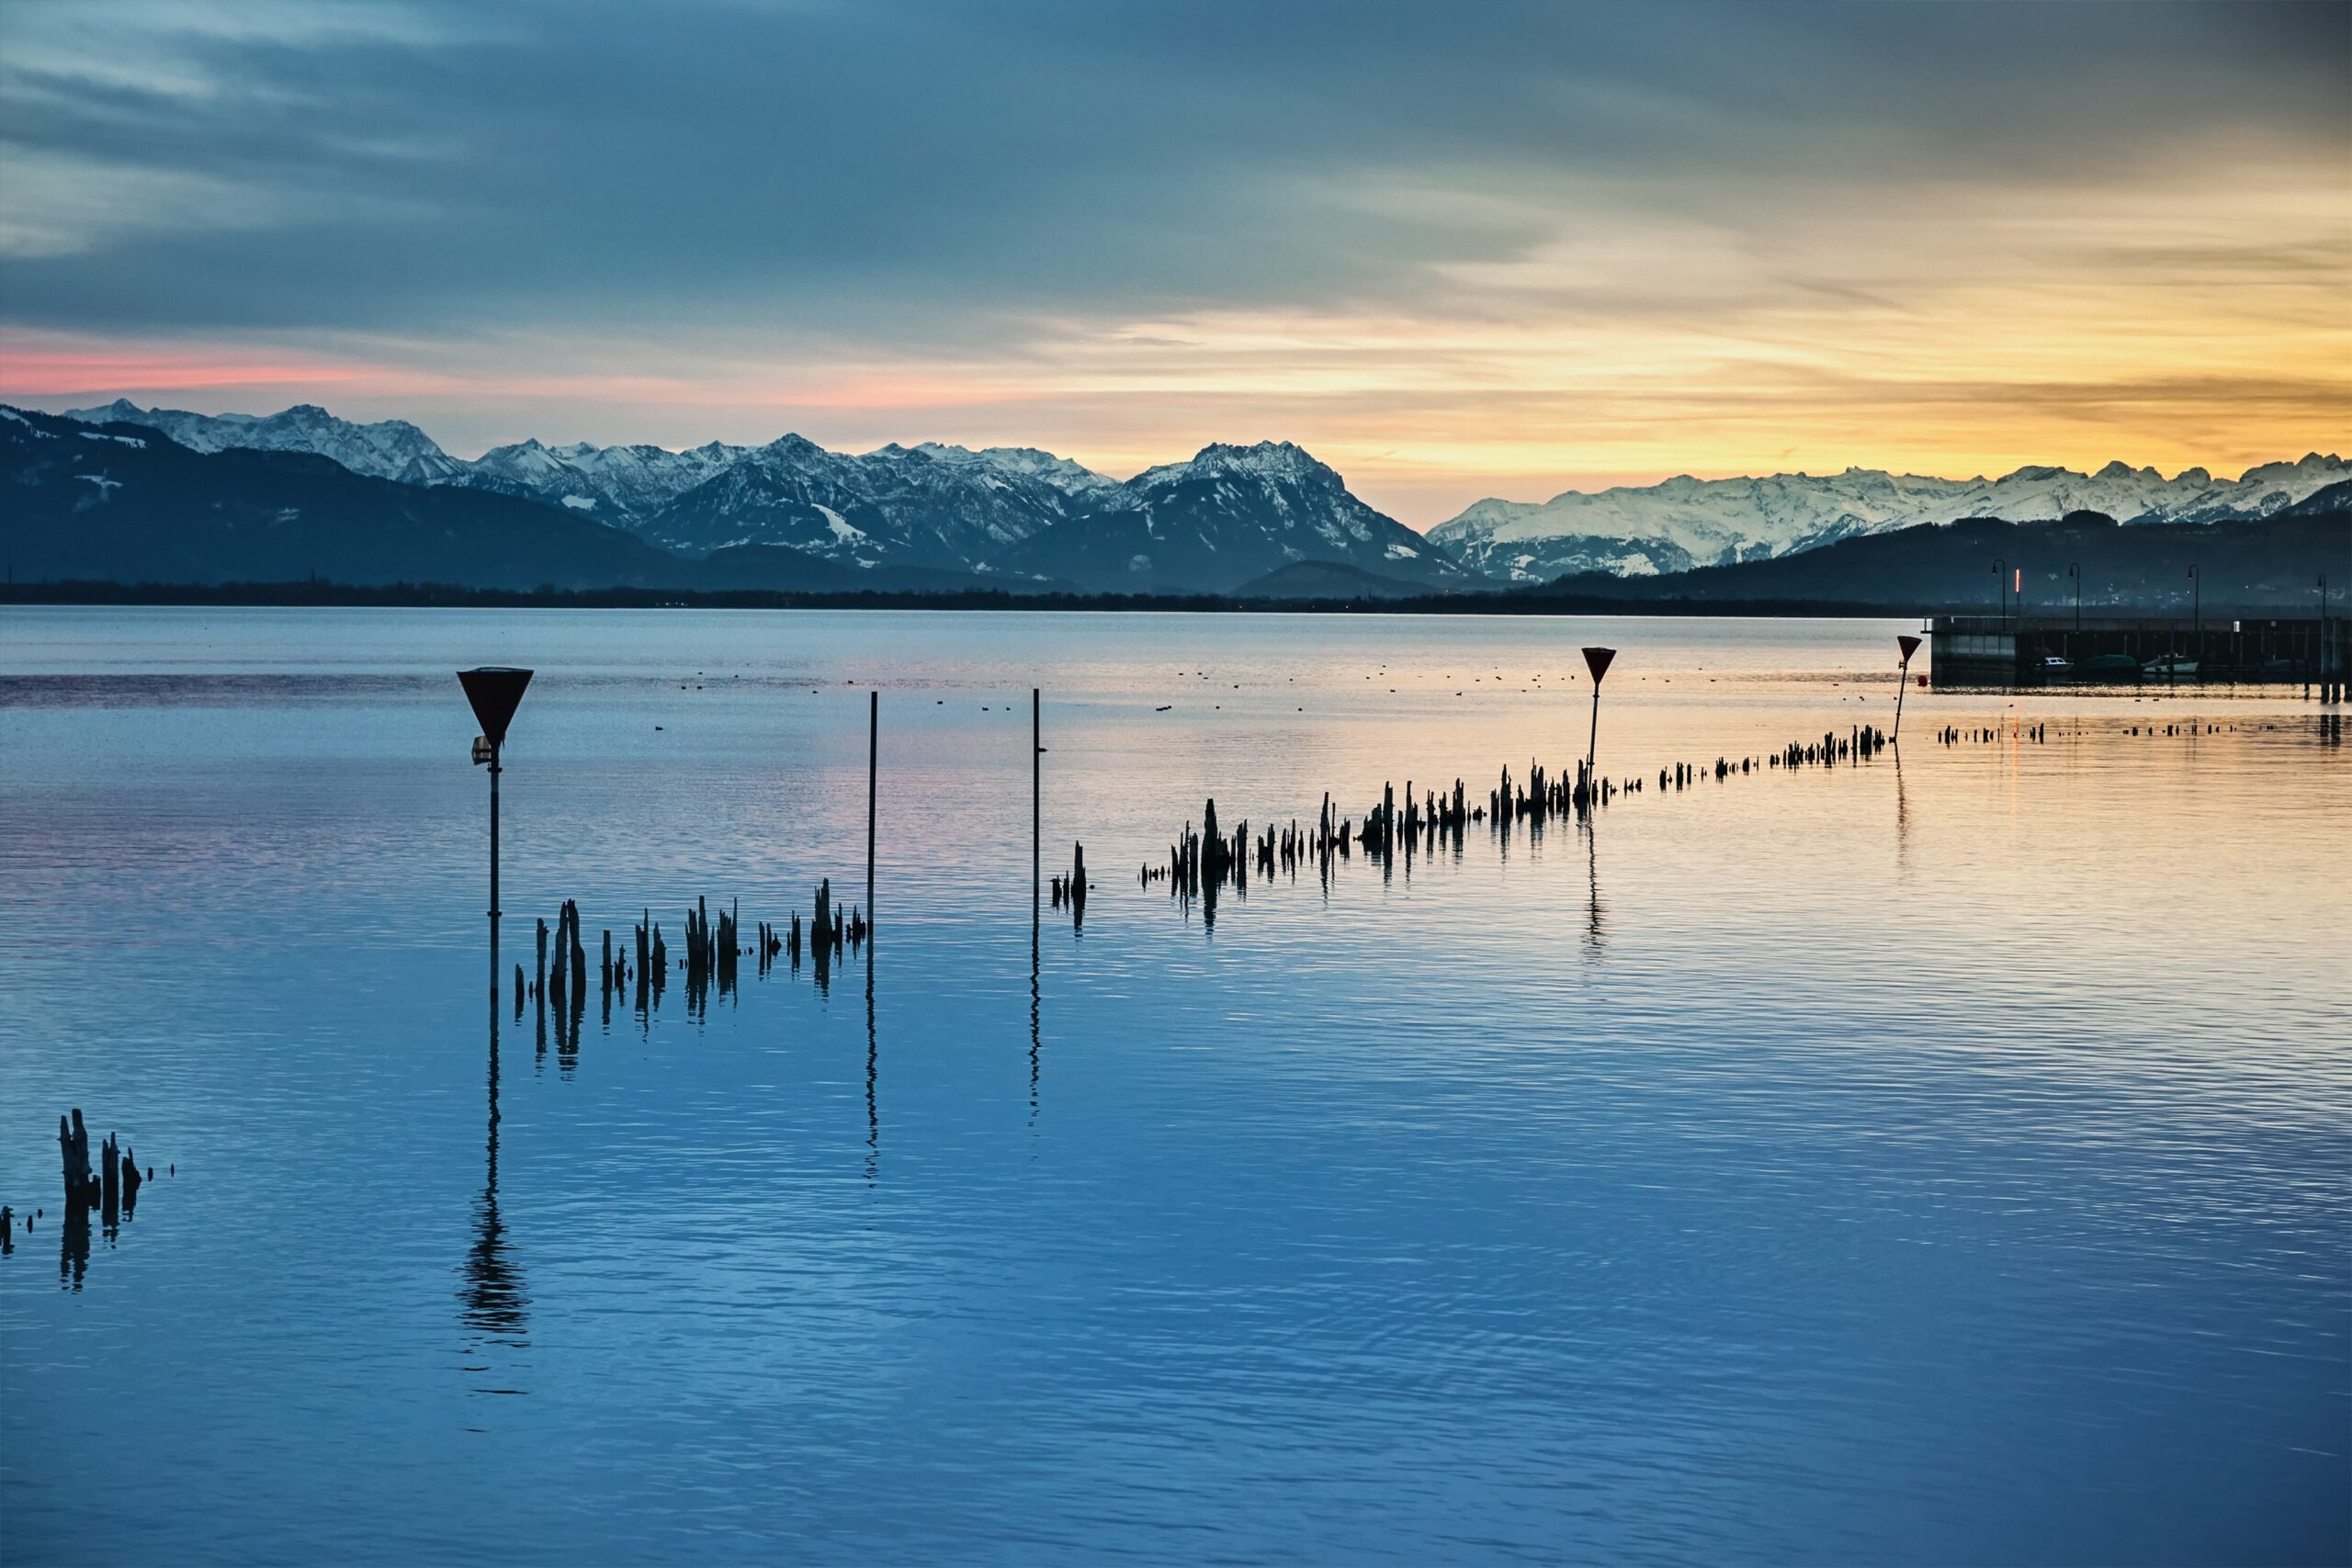 Lake Constance with the Alps in the background